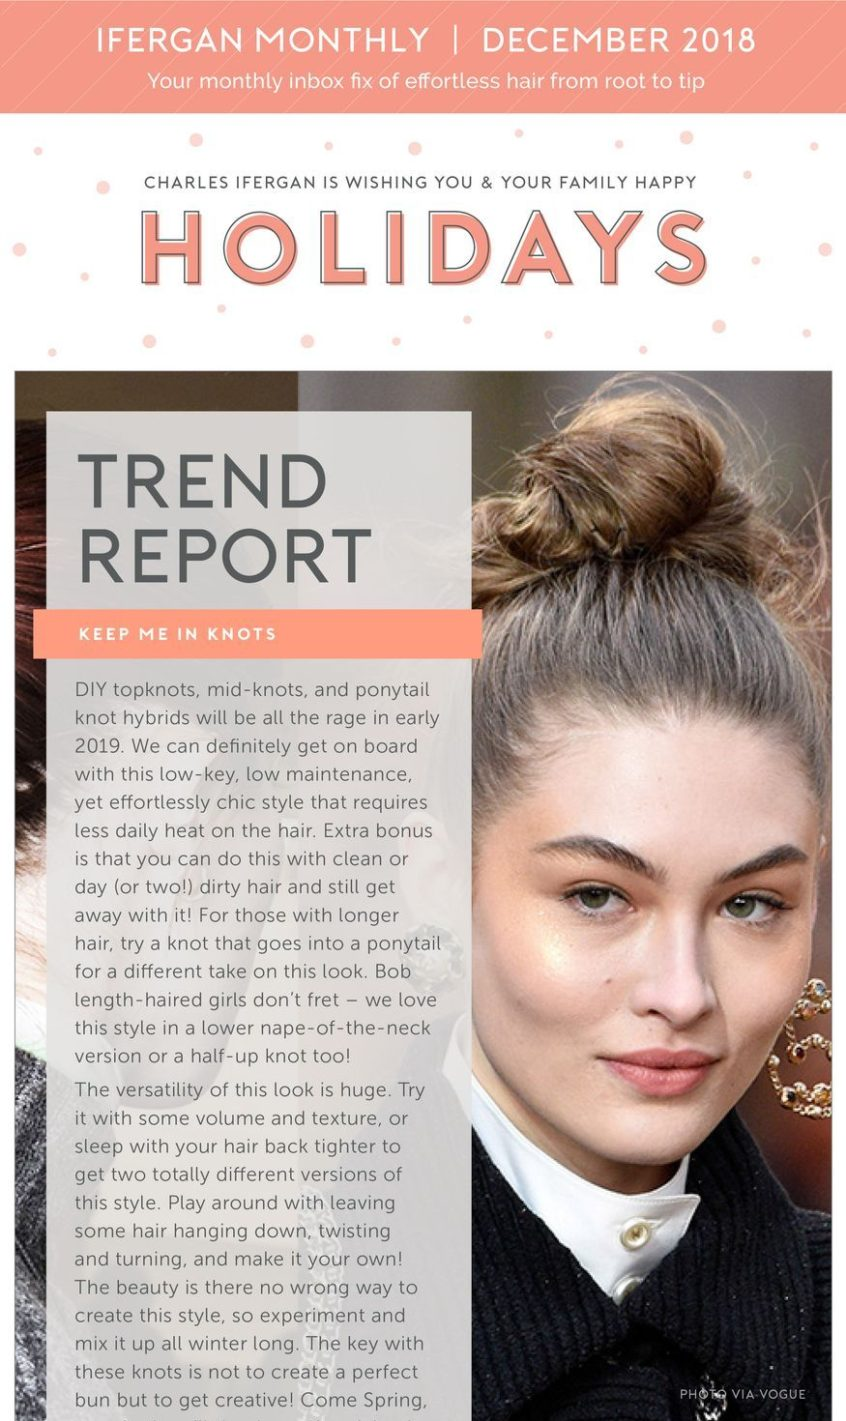 dit top knot hair style - december 2019 Charles Ifergan Salon in Chicago - Newsletter